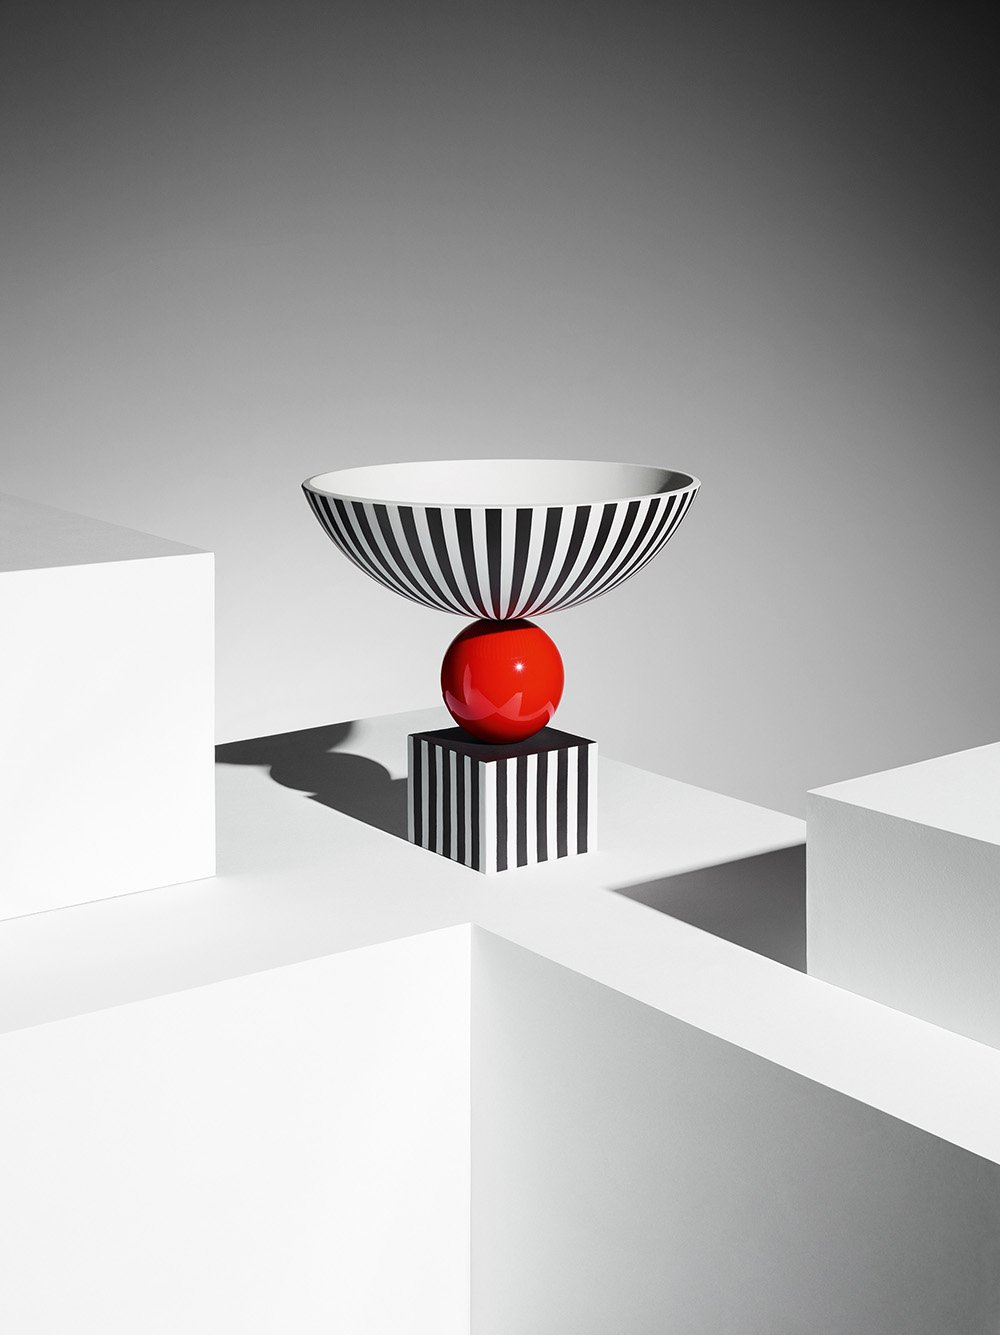 Lee Broom